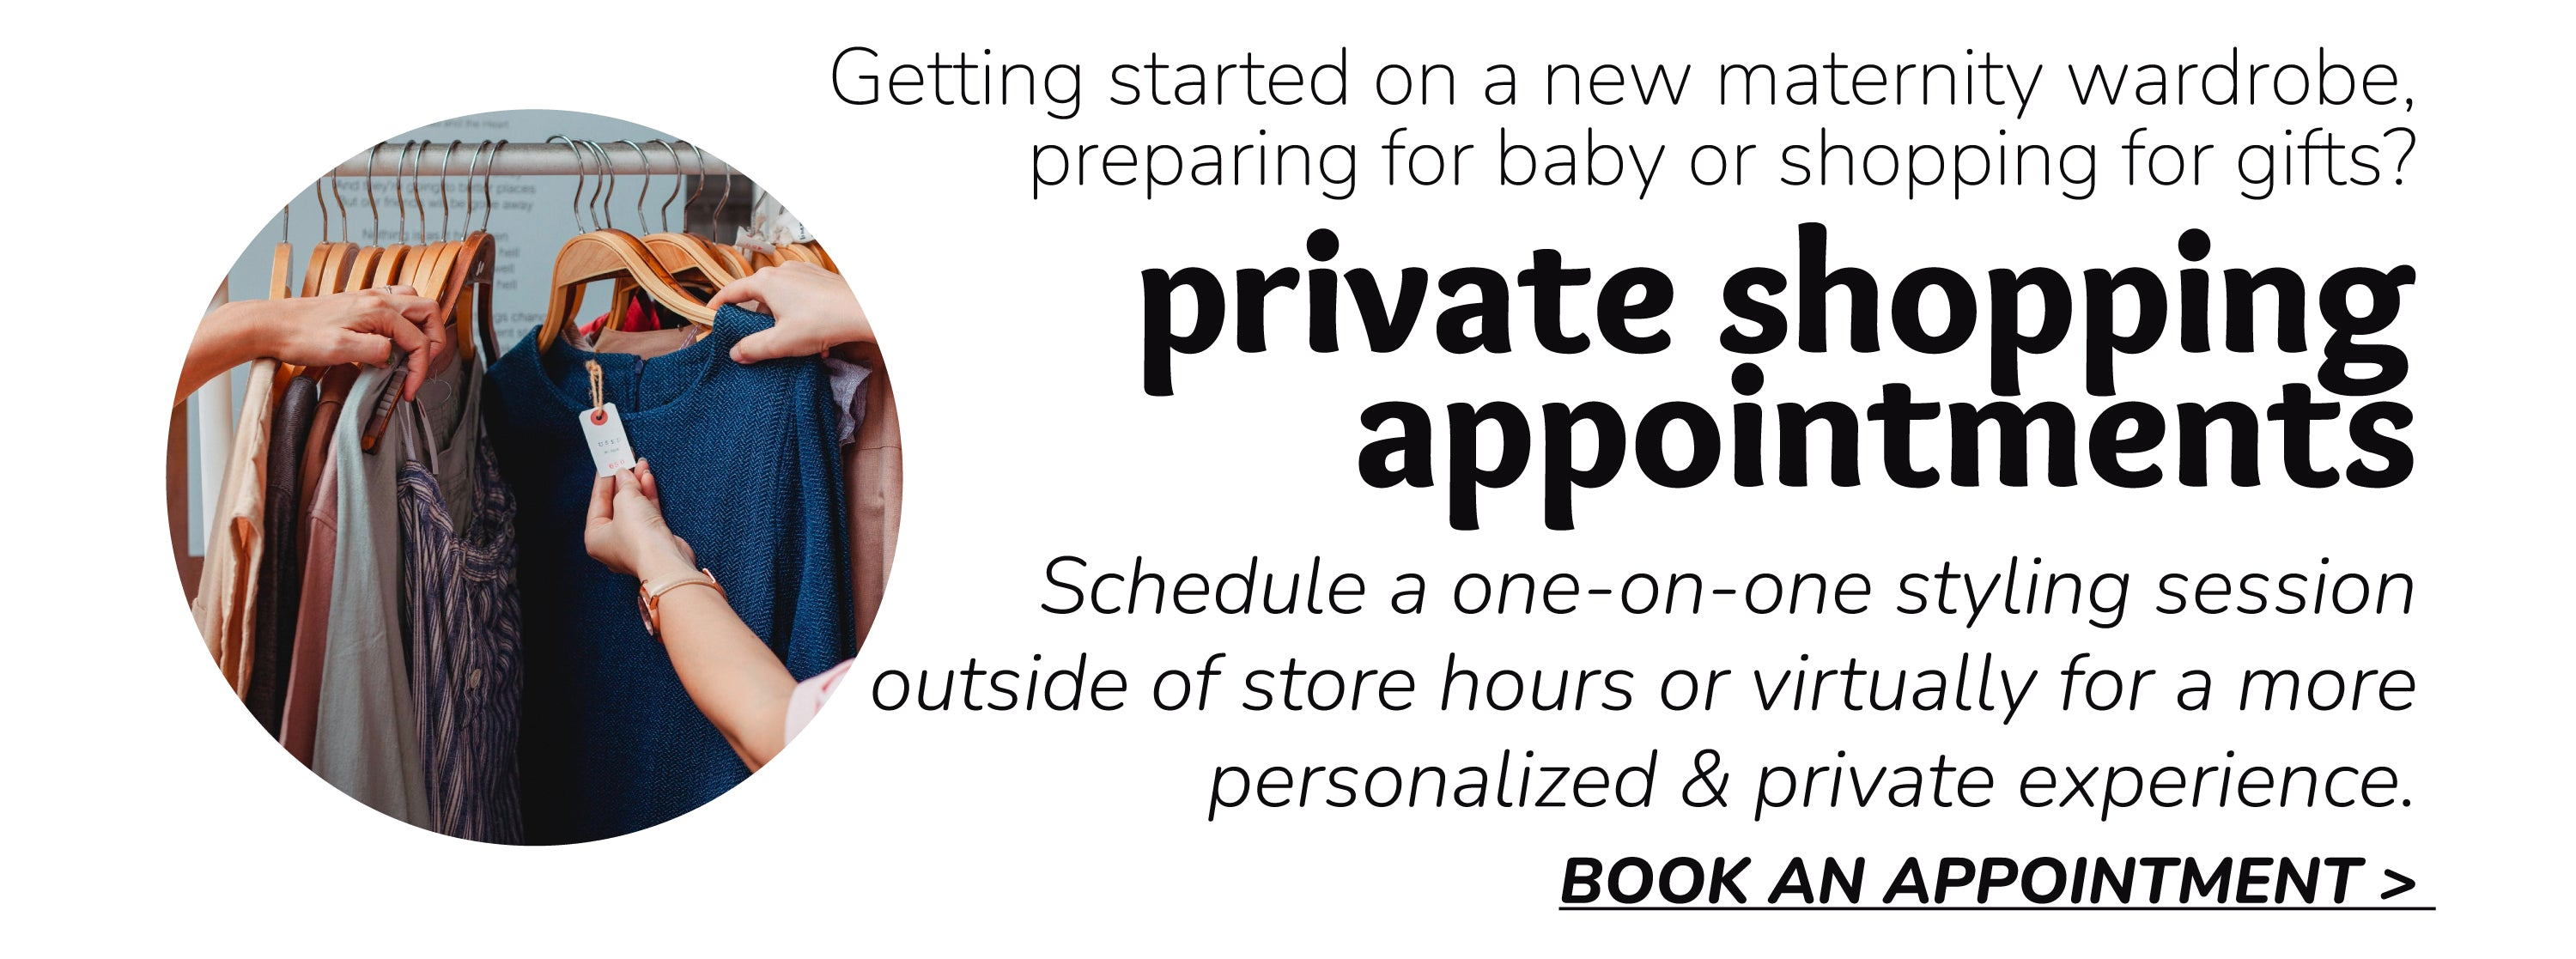 private shopping  appointments | Schedule a one-on-one styling session  outside of store hours or virtually for a more personalized & private experience. BOOK AN APPOINTMENT >